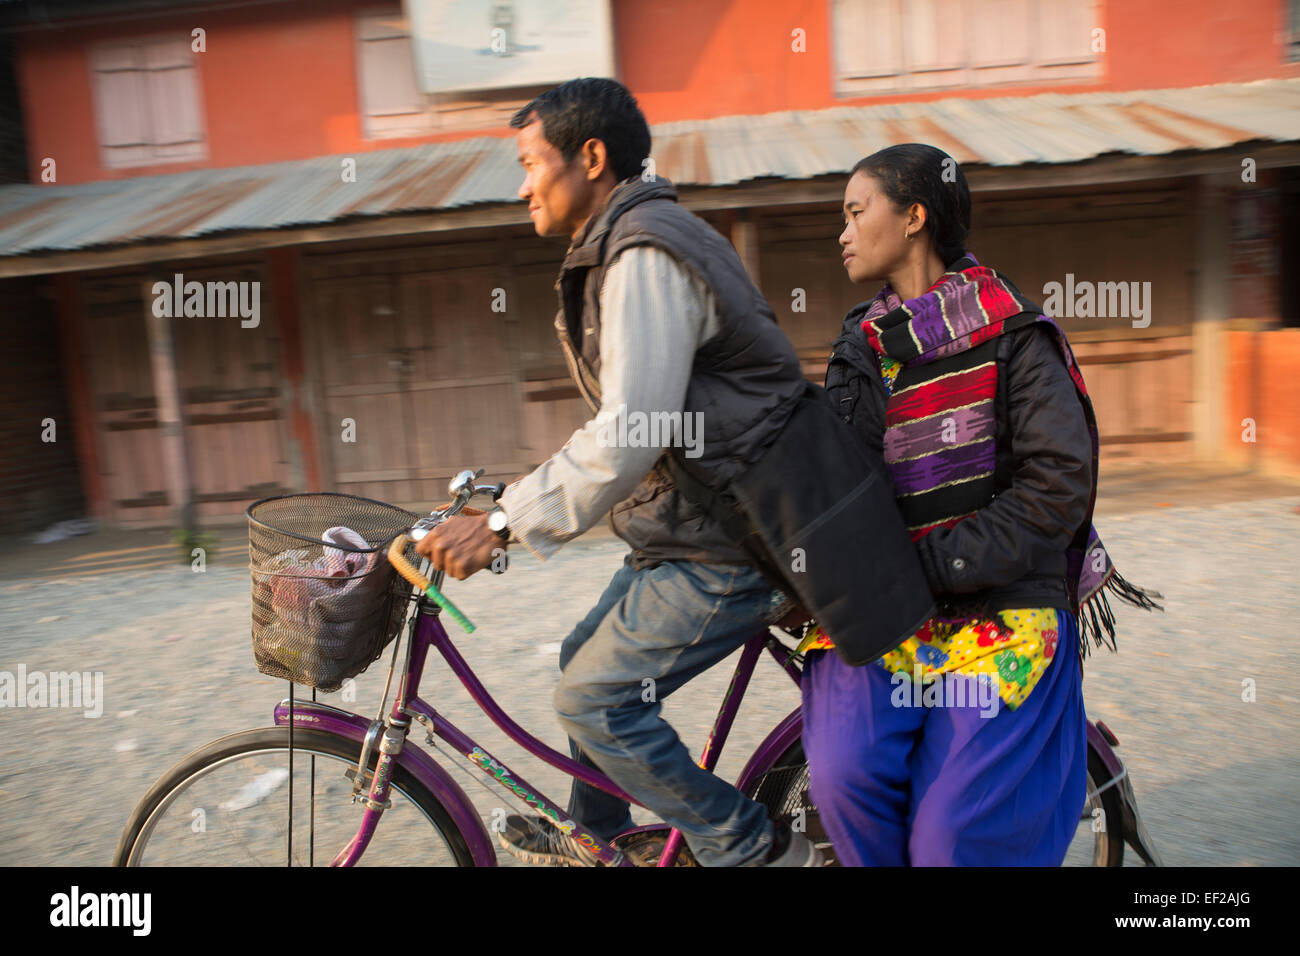 Bicyclers in the Terai - Shaktikhor, Nepal. - Stock Image